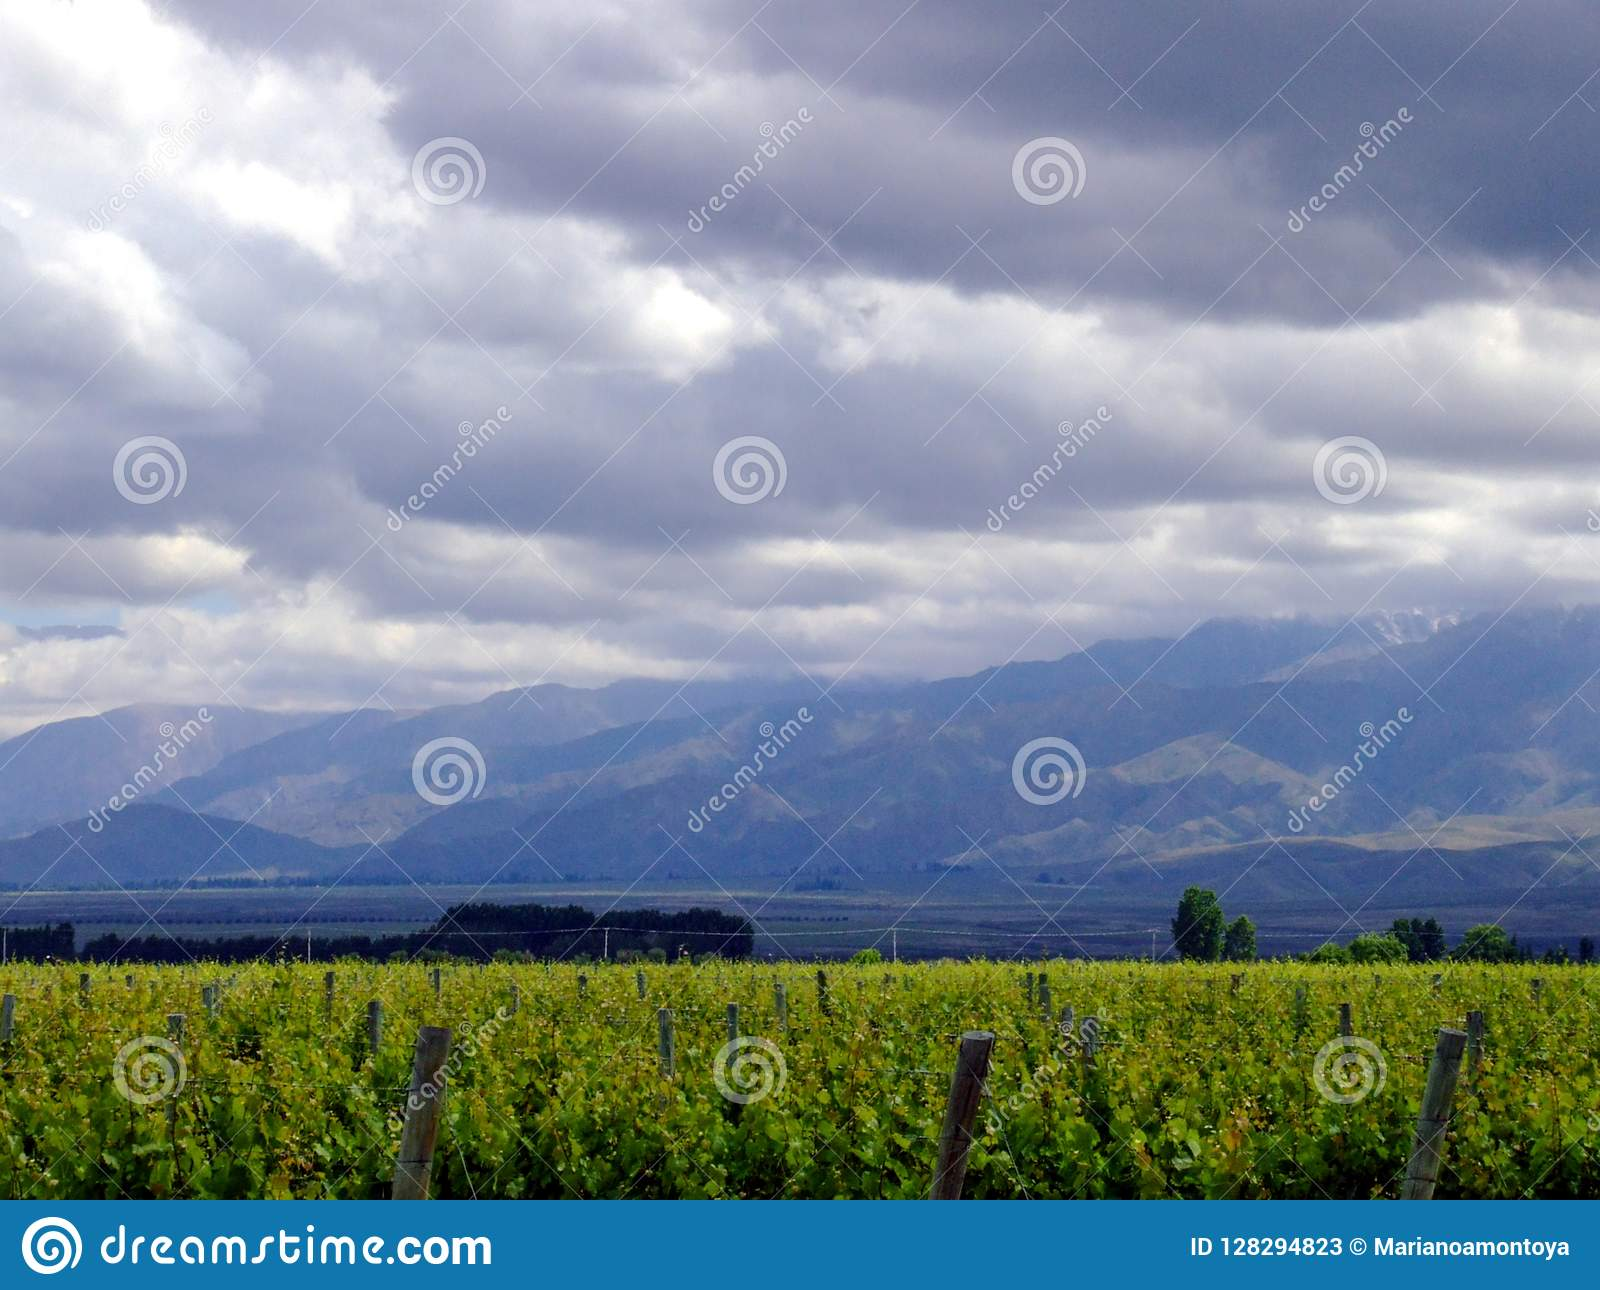 Vineyards and sky